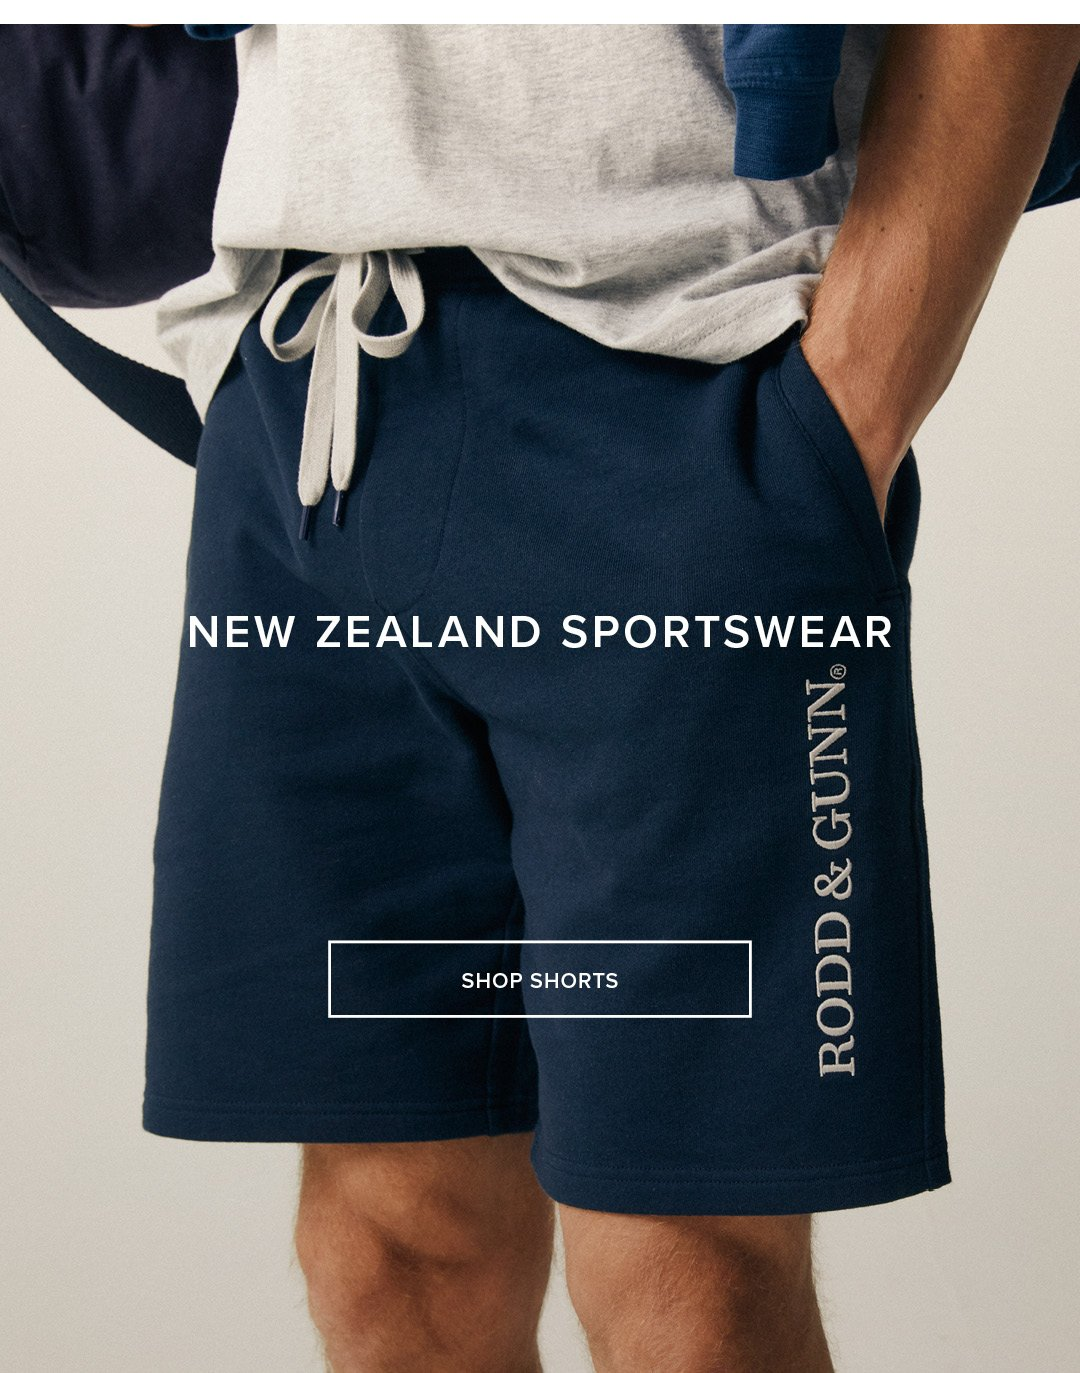 NZ Sportswear - Shop Shorts